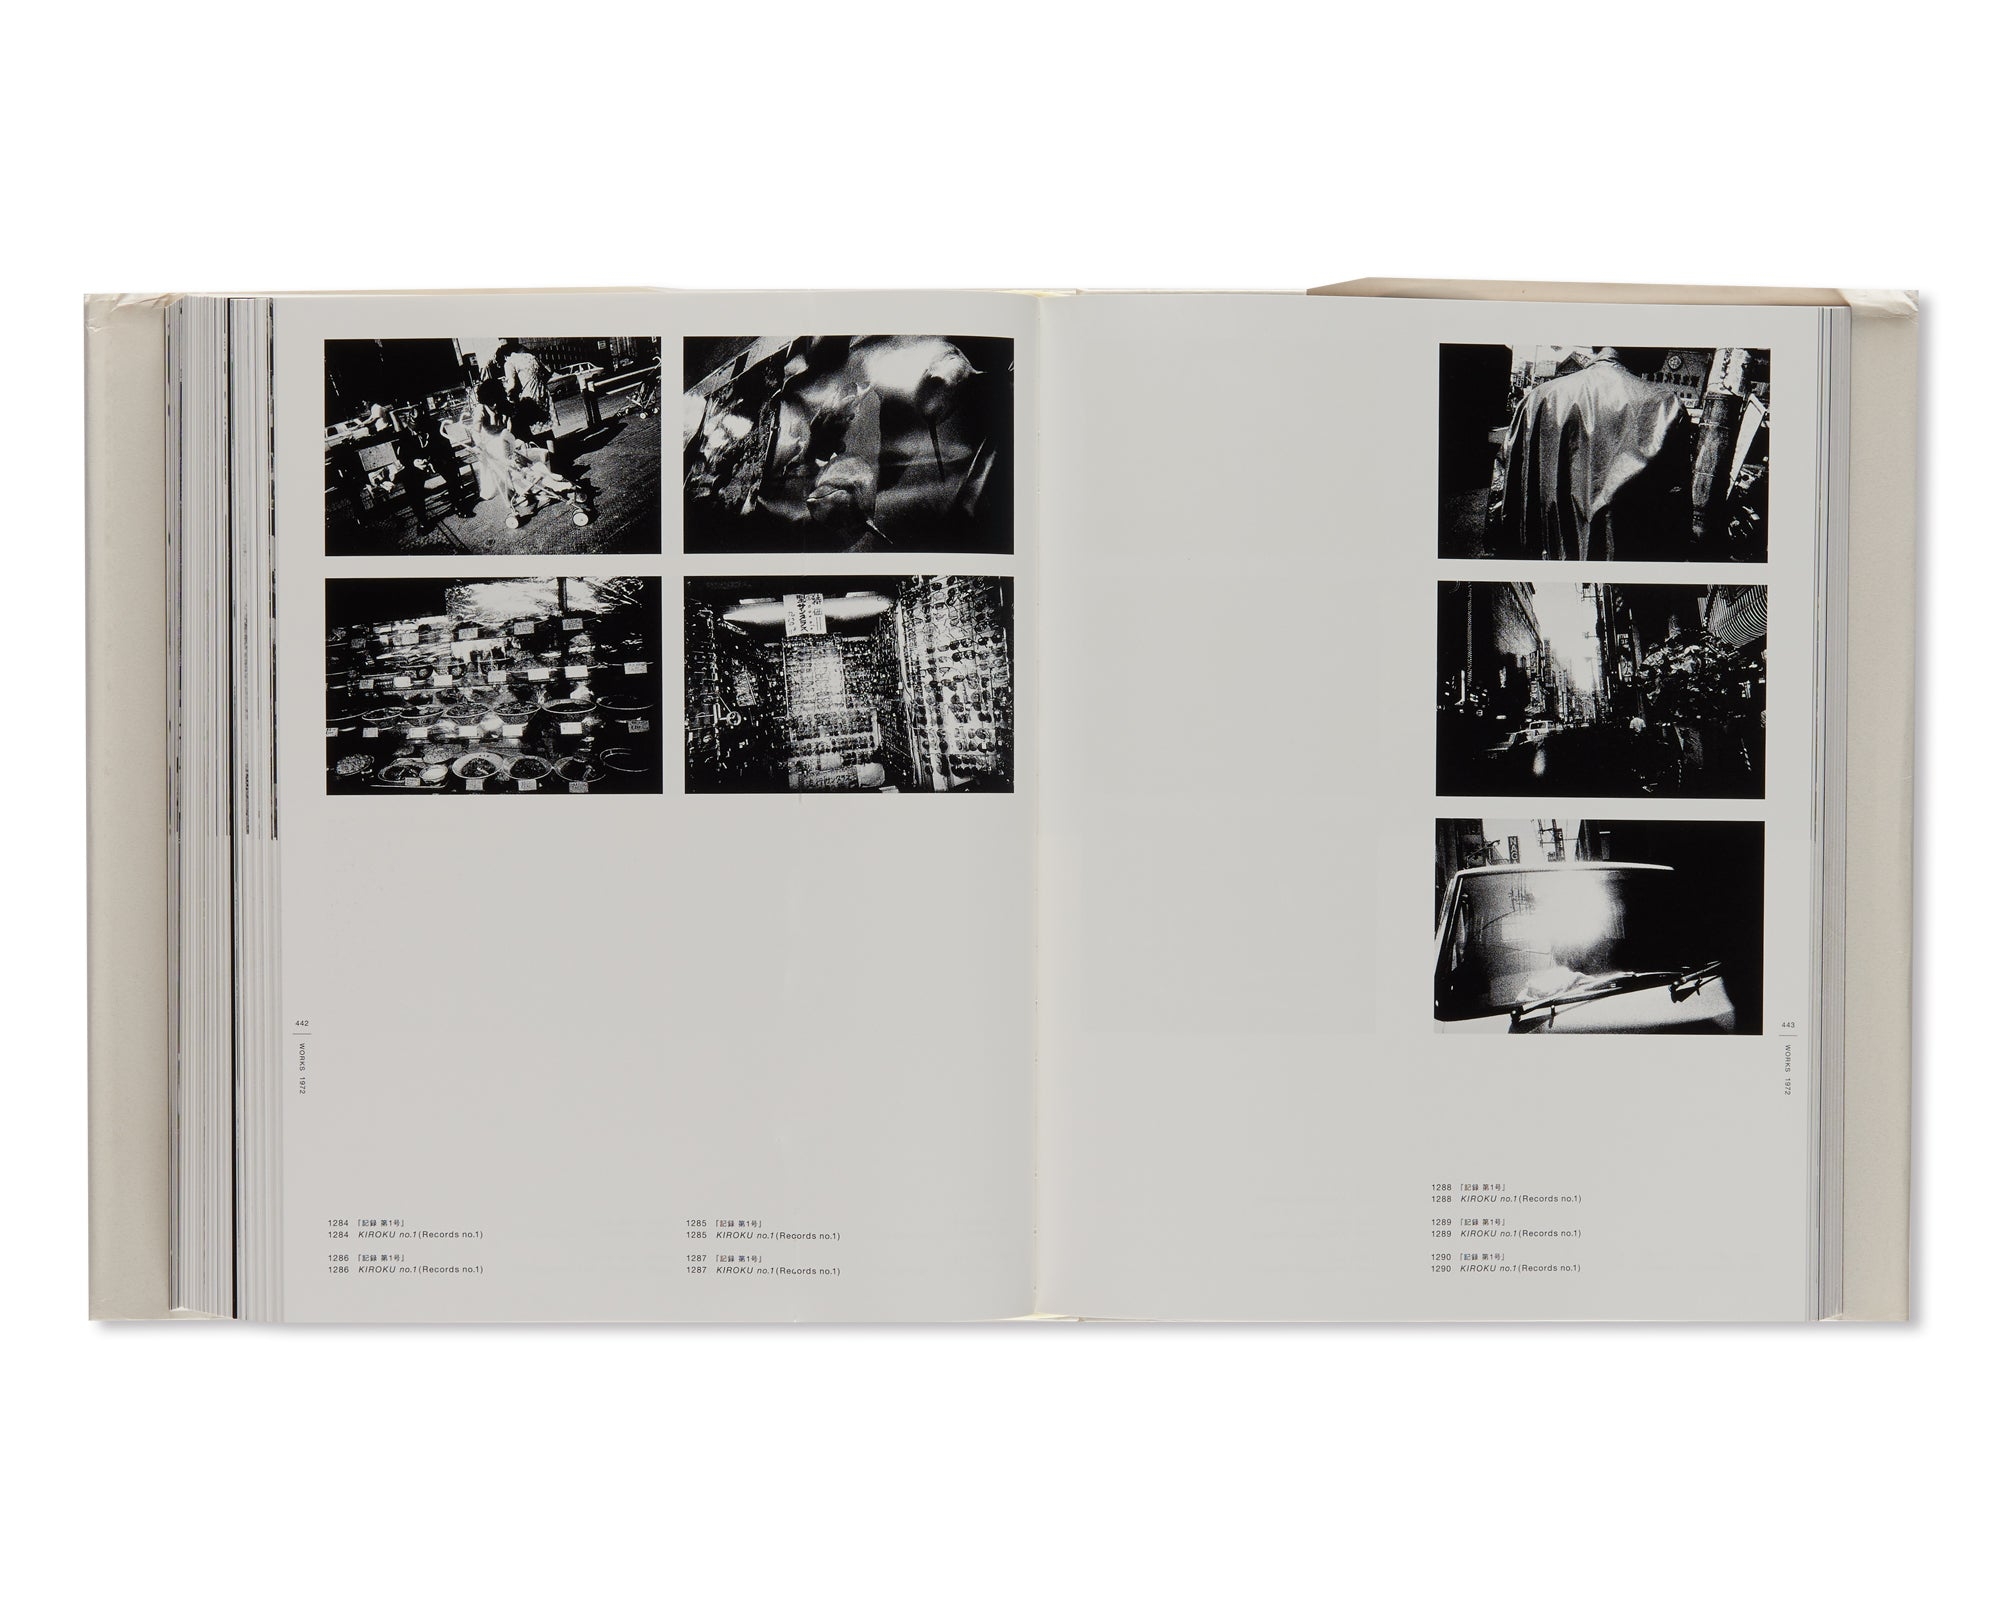 DAIDO MORIYAMA THE COMPLETE WORKS - A SET OF VOL. 1, 2, 3 AND 4 by Daido Moriyama